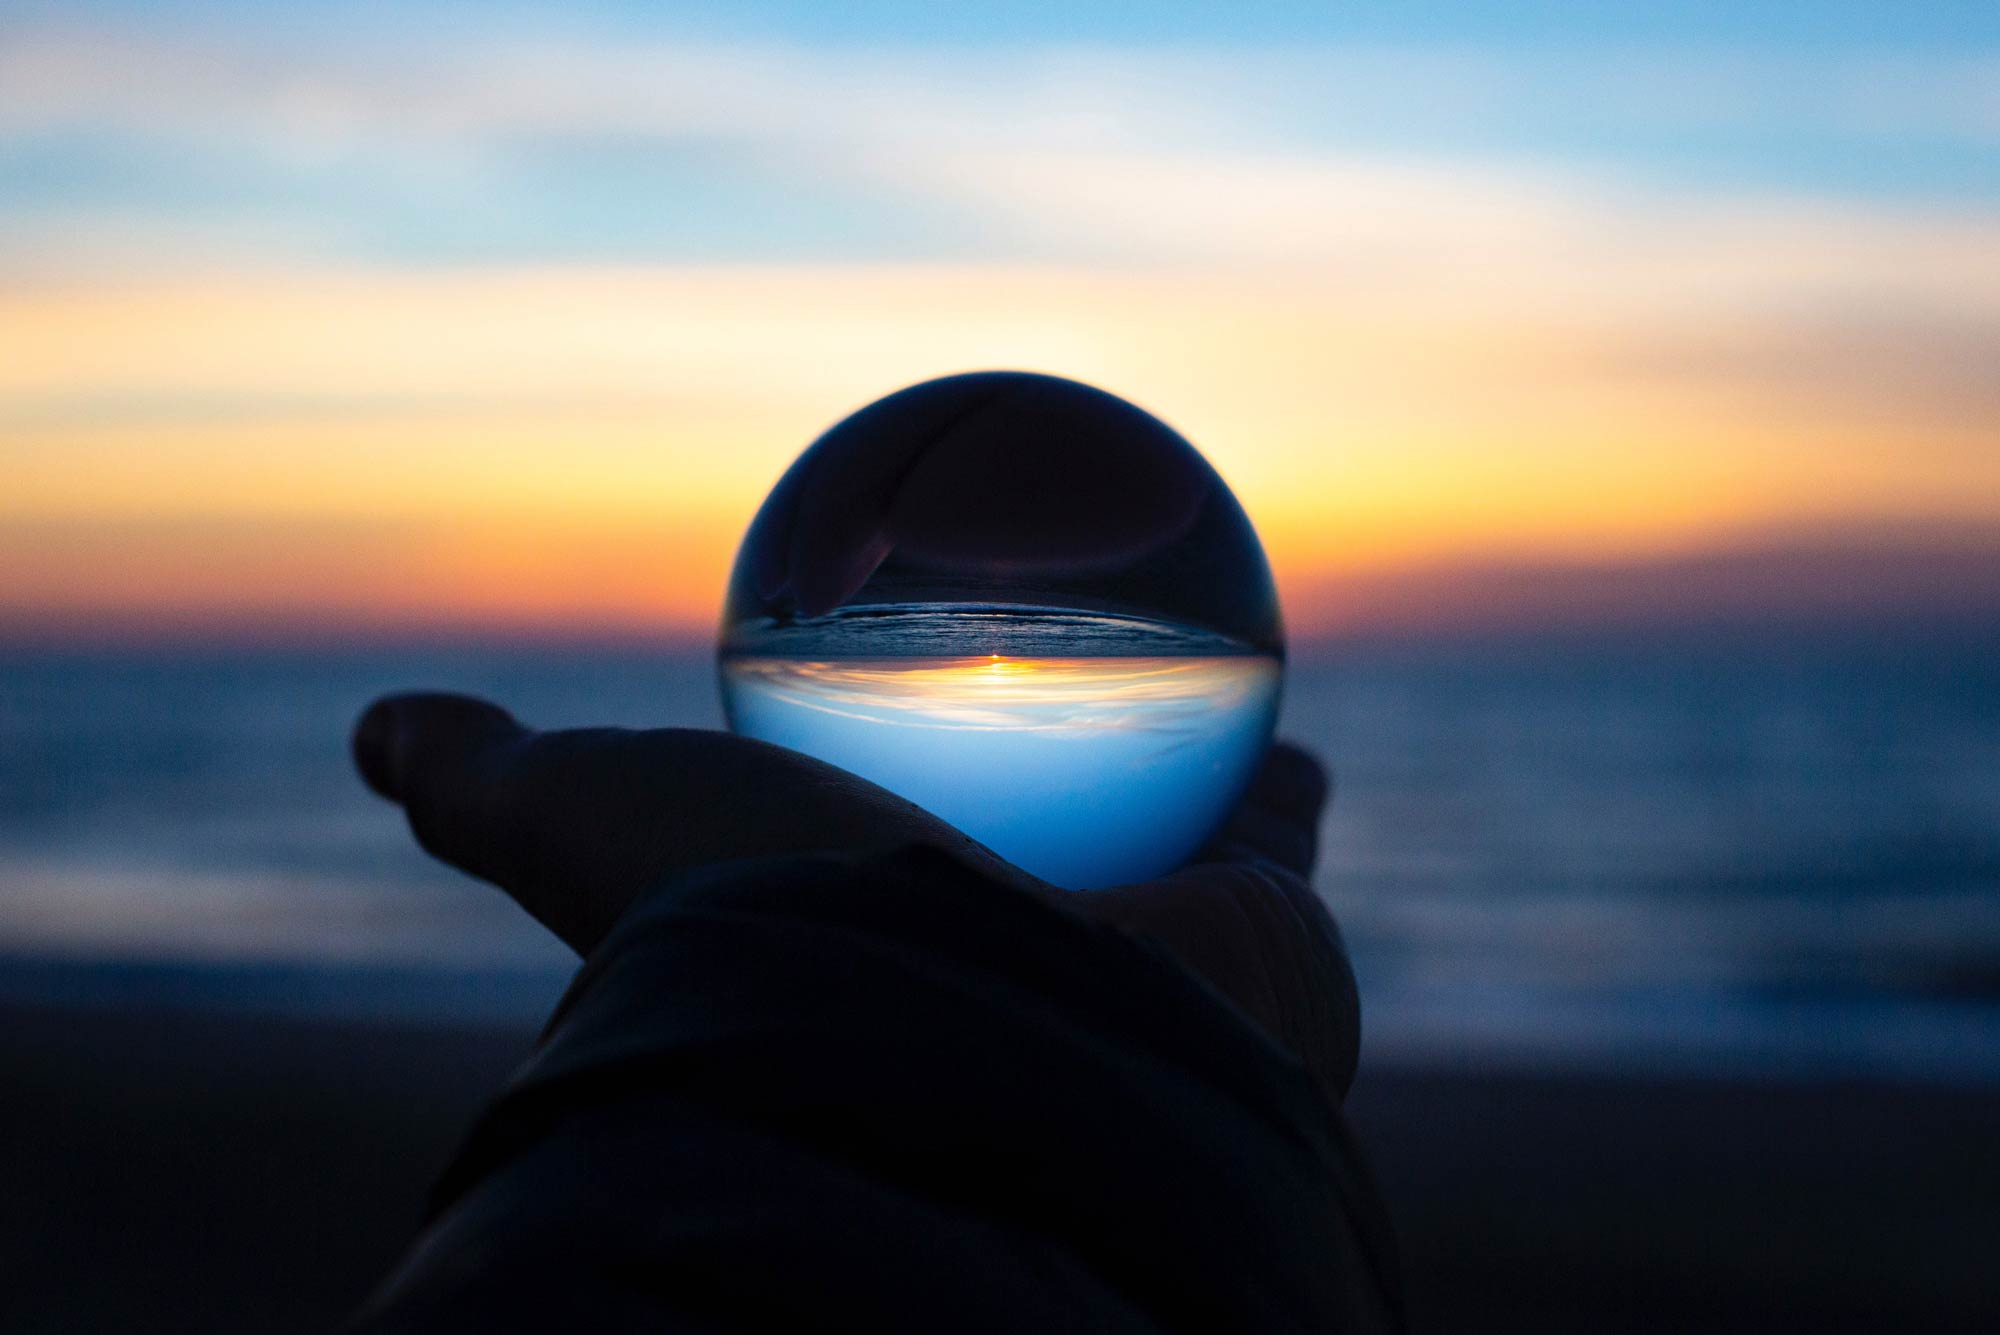 A photo of a hand holding a crystal ball that is reflecting a skyline.